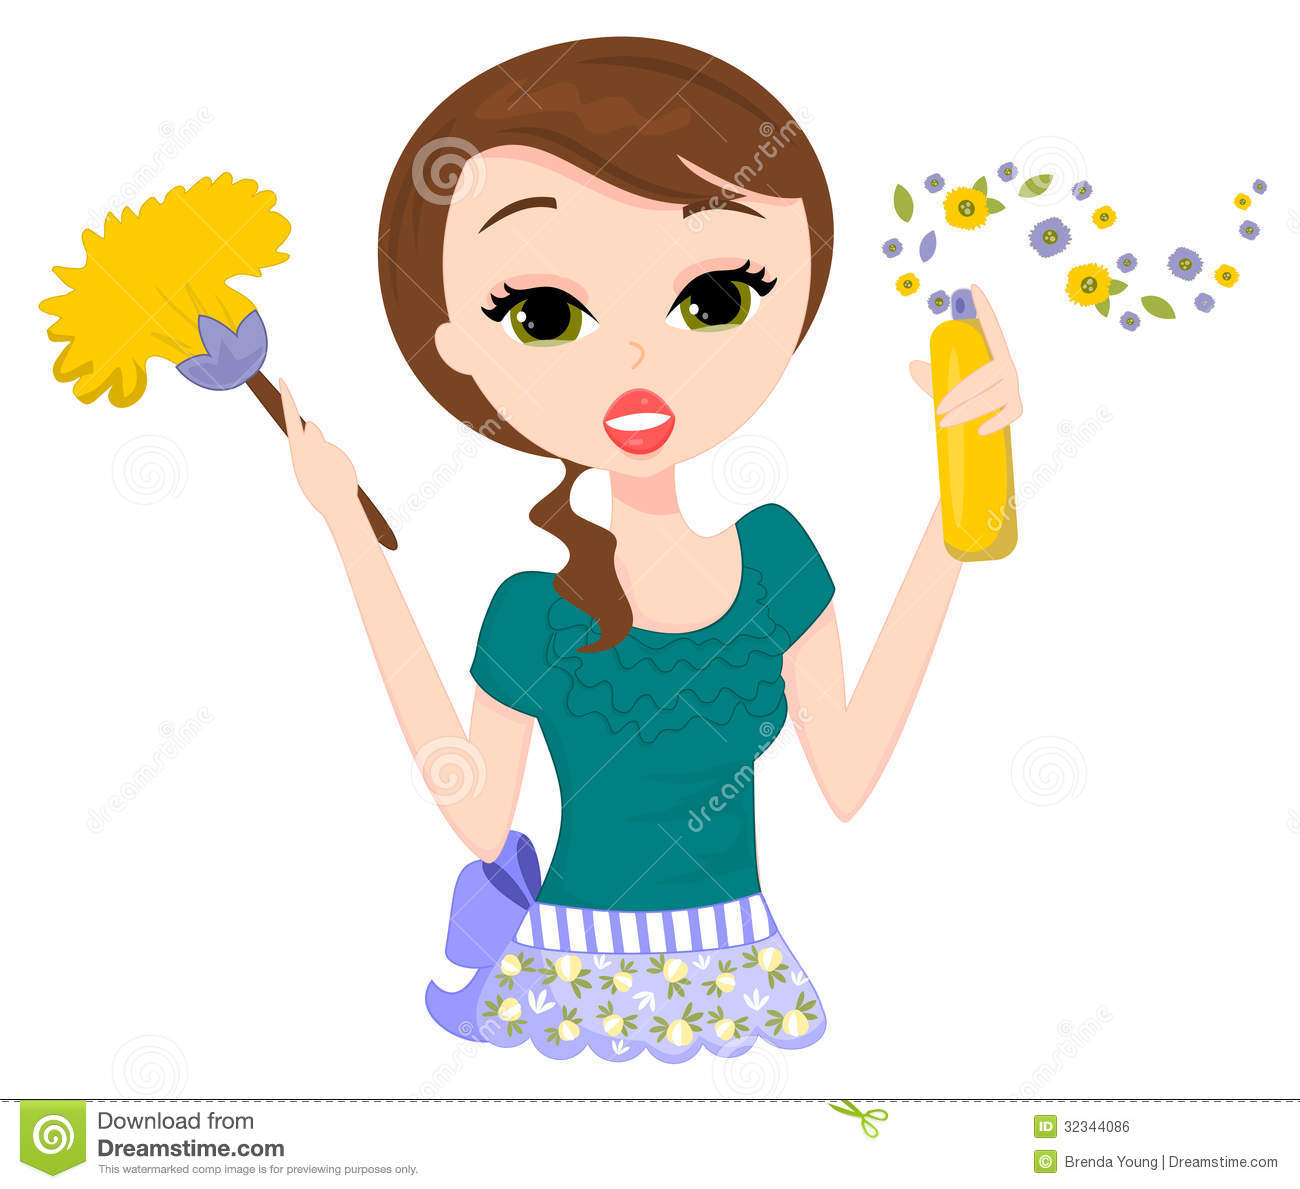 Clip Art Cleaning Lady Clipart cleaning lady clipart kid dusting and spray dusting